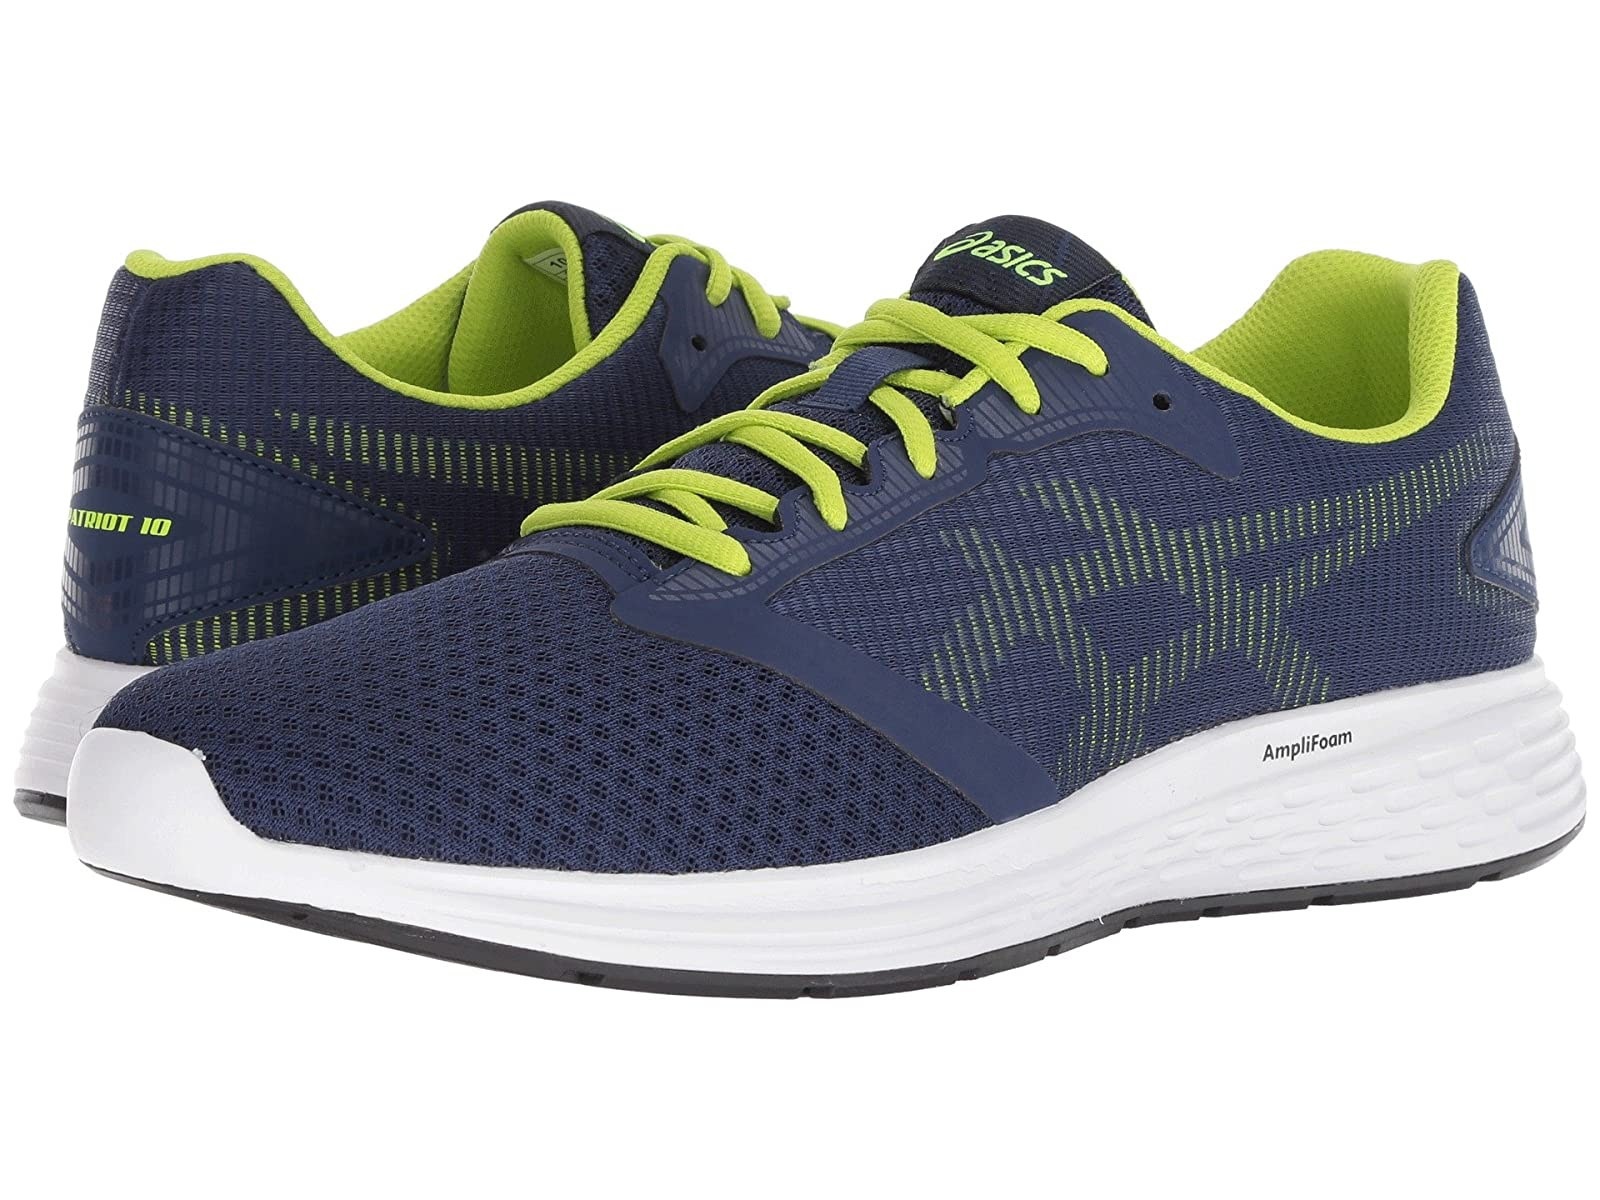 ASICS PatriotCheap and distinctive eye-catching shoes